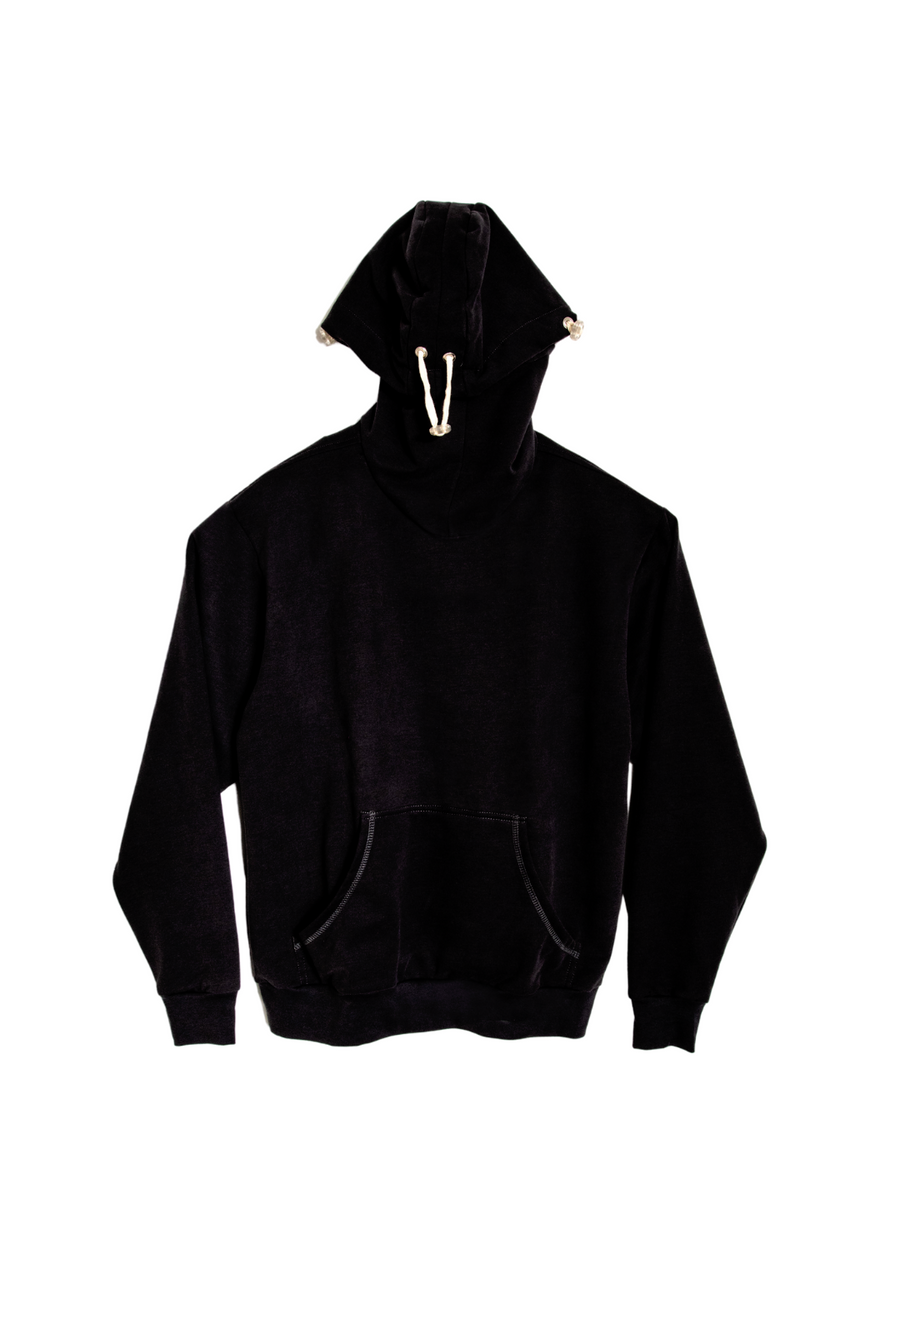 Be Kind - Hoodie Black